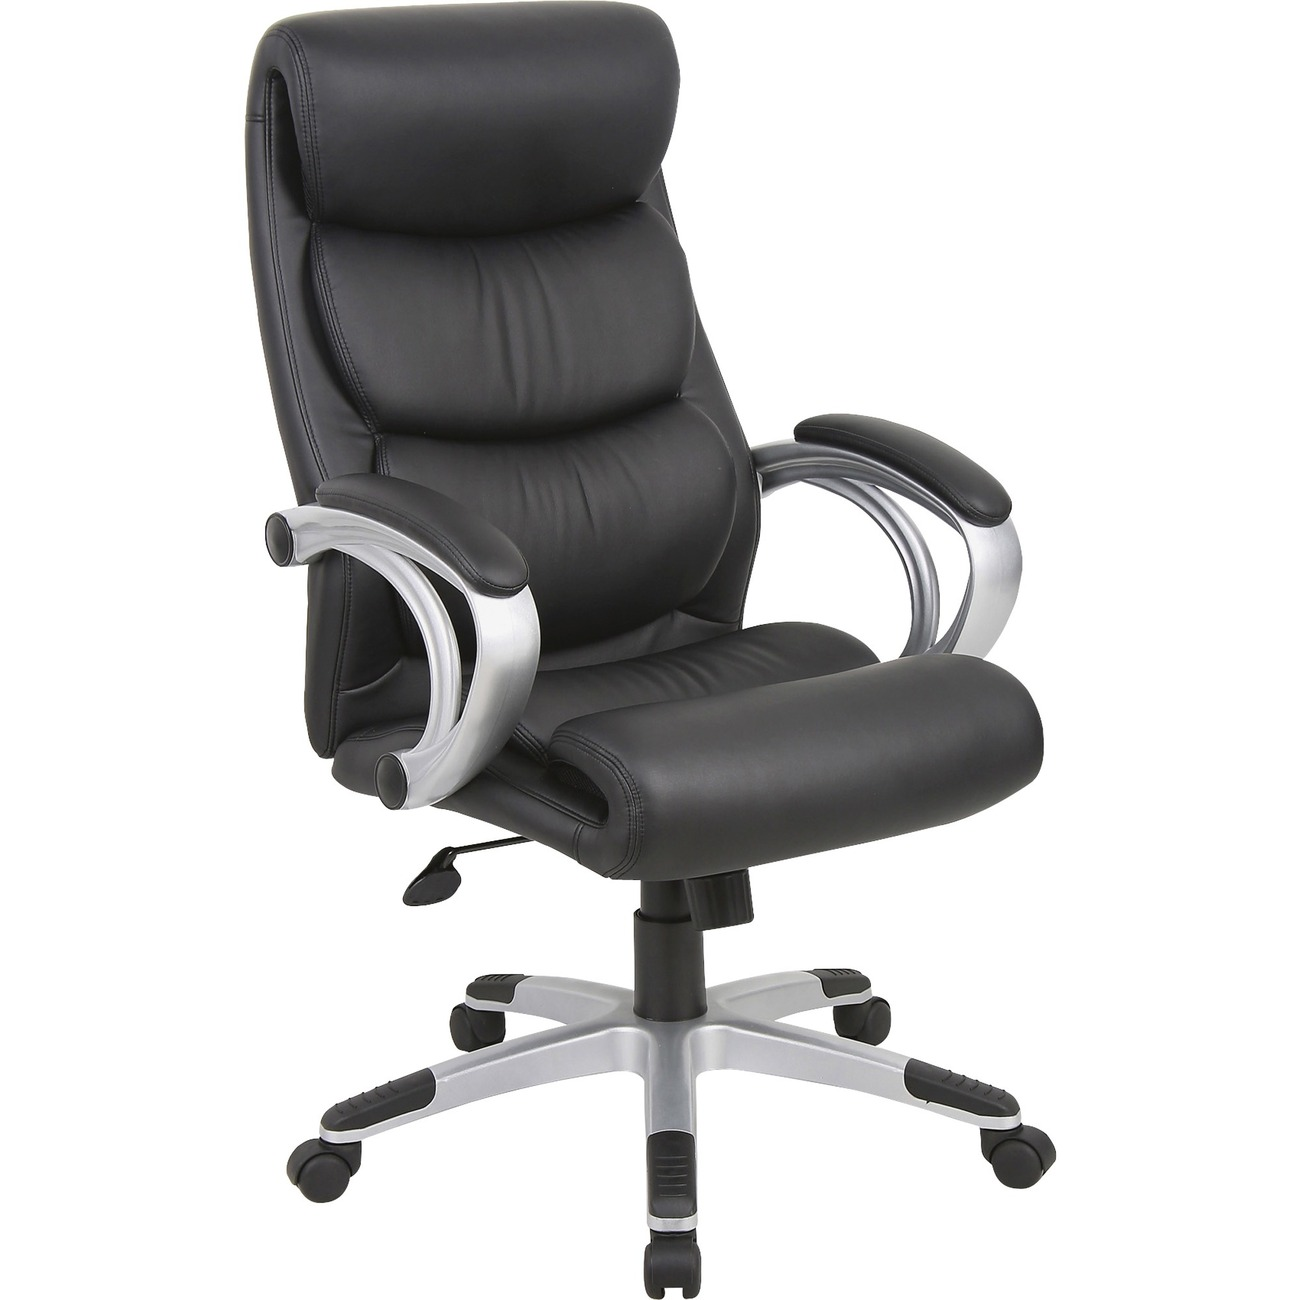 executive chair accessories top office chairs under 200 west coast supplies furniture